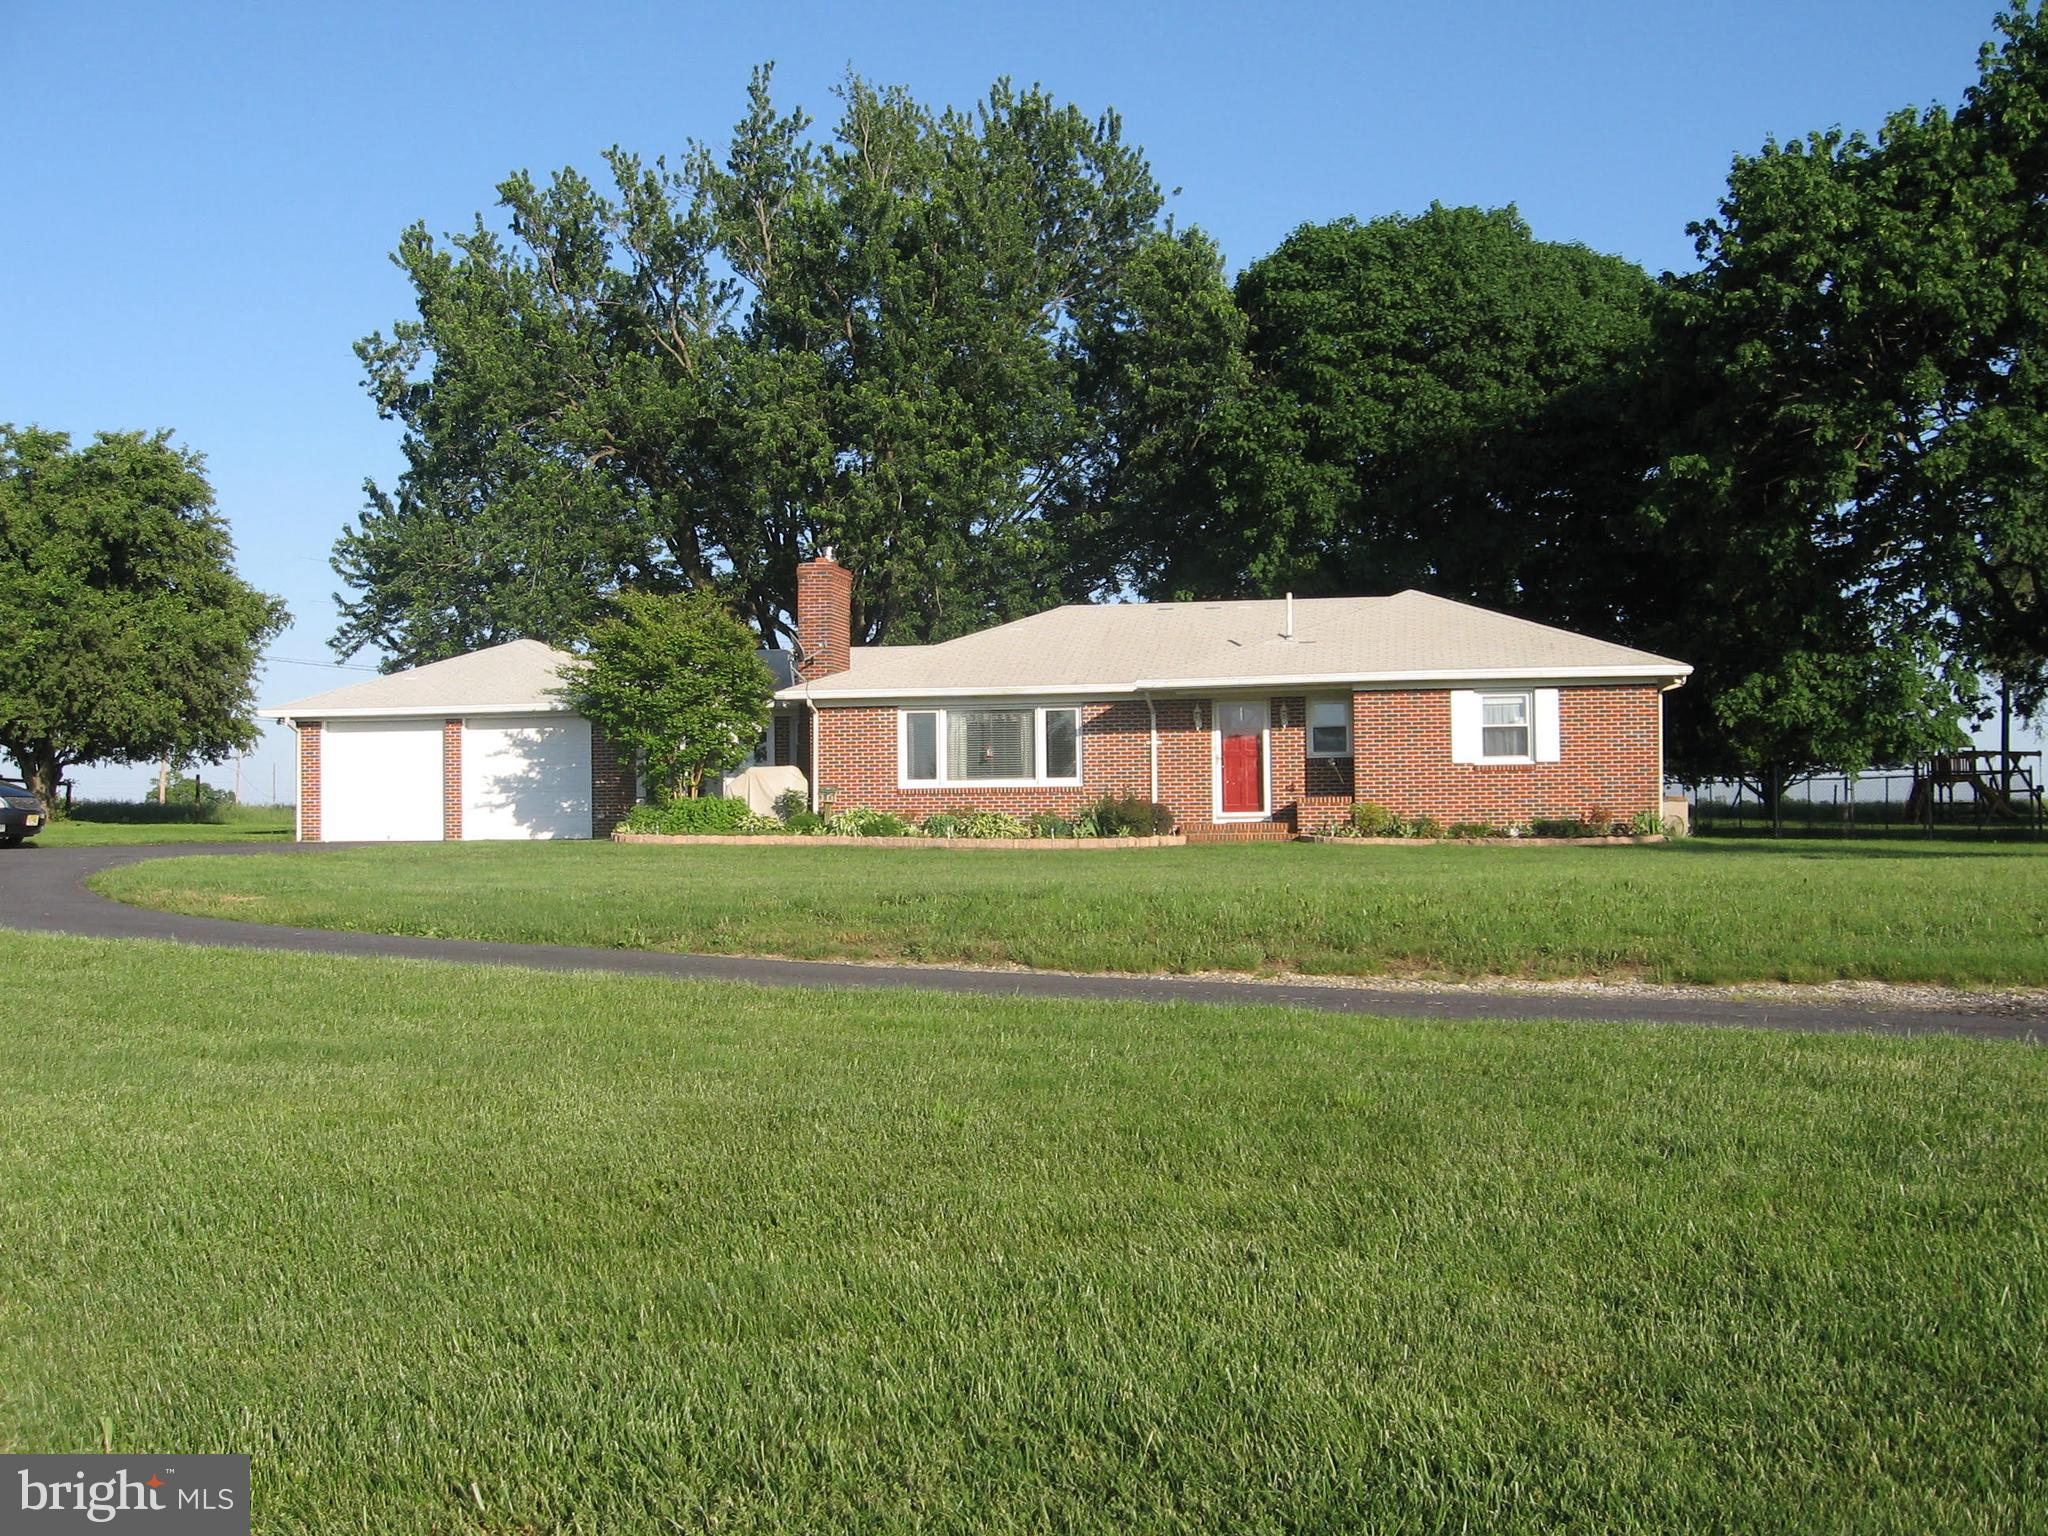 Very nice 3 bedroom brick rancher, 1.5 baths on approx 1 acre of land.  Enter into the spacious living room with a wood burning fireplace and opens to a cozy dining room.  Bright and cheery eat-in kitchen with tile flooring and includes all stainless steel appliances.  Laundry room is next to kitchen, washer & dryer are 3 years old and are included.  Furnace and hot water heater is 3 years old.  Walk thru and continue into the very large breezeway that goes out to the back yard or continue to the 2 car garage with pull down stairs to walk up attic.  Back yard is fenced and looks out to pastures.  Long driveway which widens up to the garage area.  Six month old roof with 50 year shingles and leaf guards.  Septic installed 5 years ago.  Must see!!  Welcome to the country!!